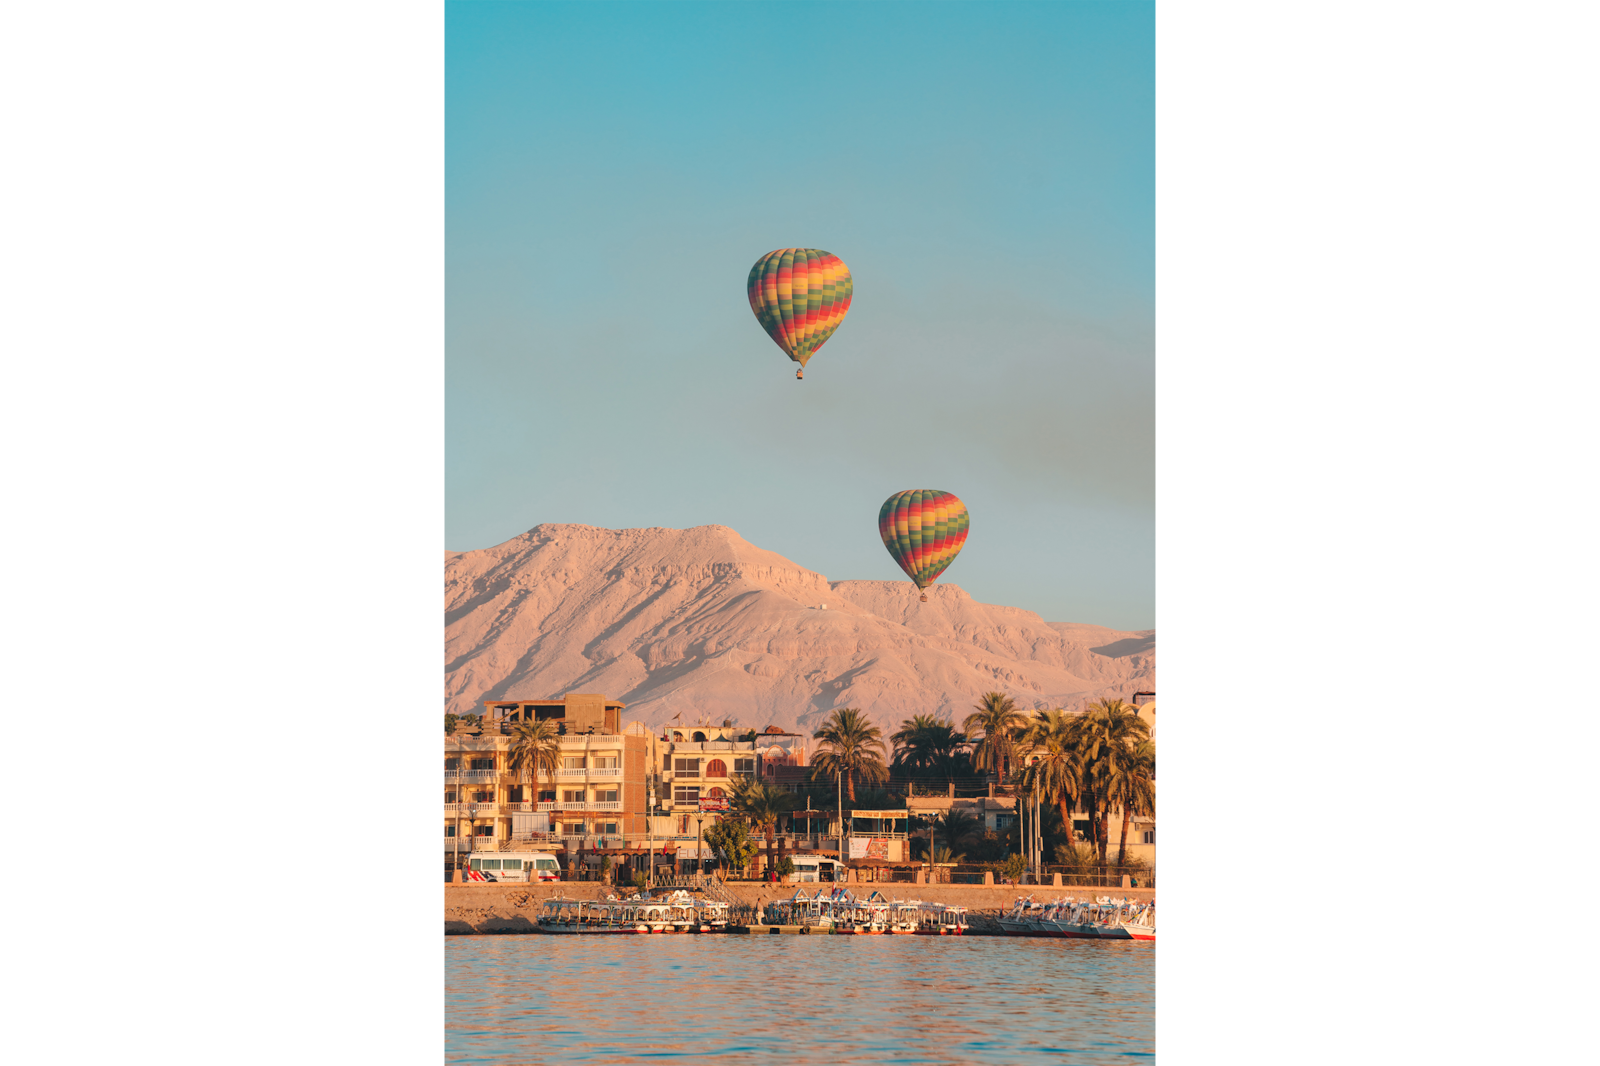 hot air ballon over coastal town alpha 7RIII